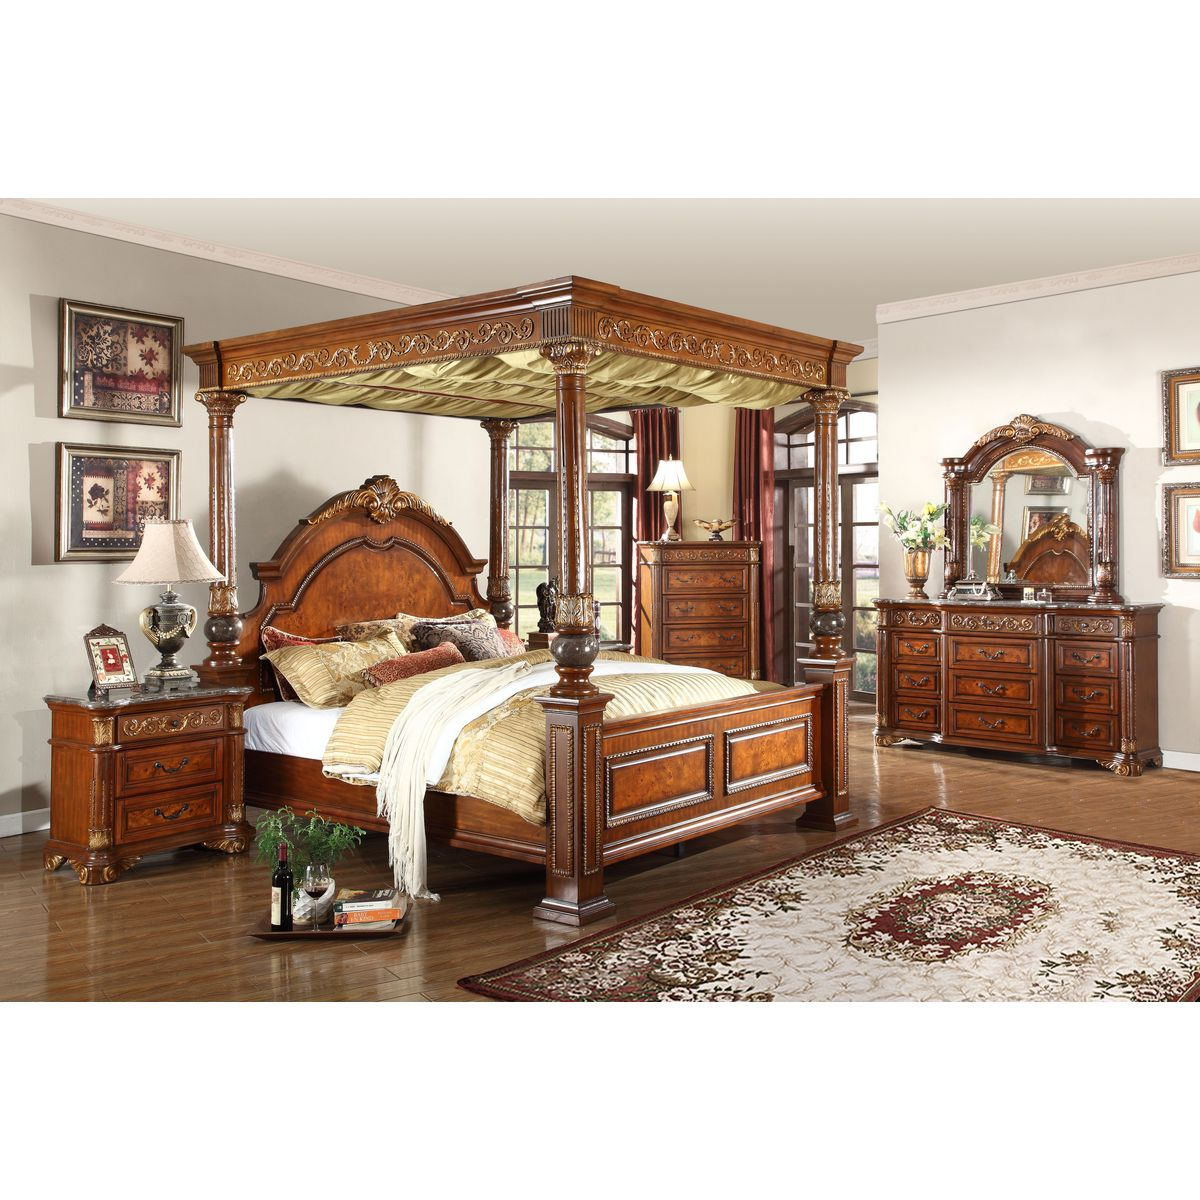 Meridian Furniture Royal Cherry Queen Canopy Bed W Ornate Carvings Marble Detail On Posts